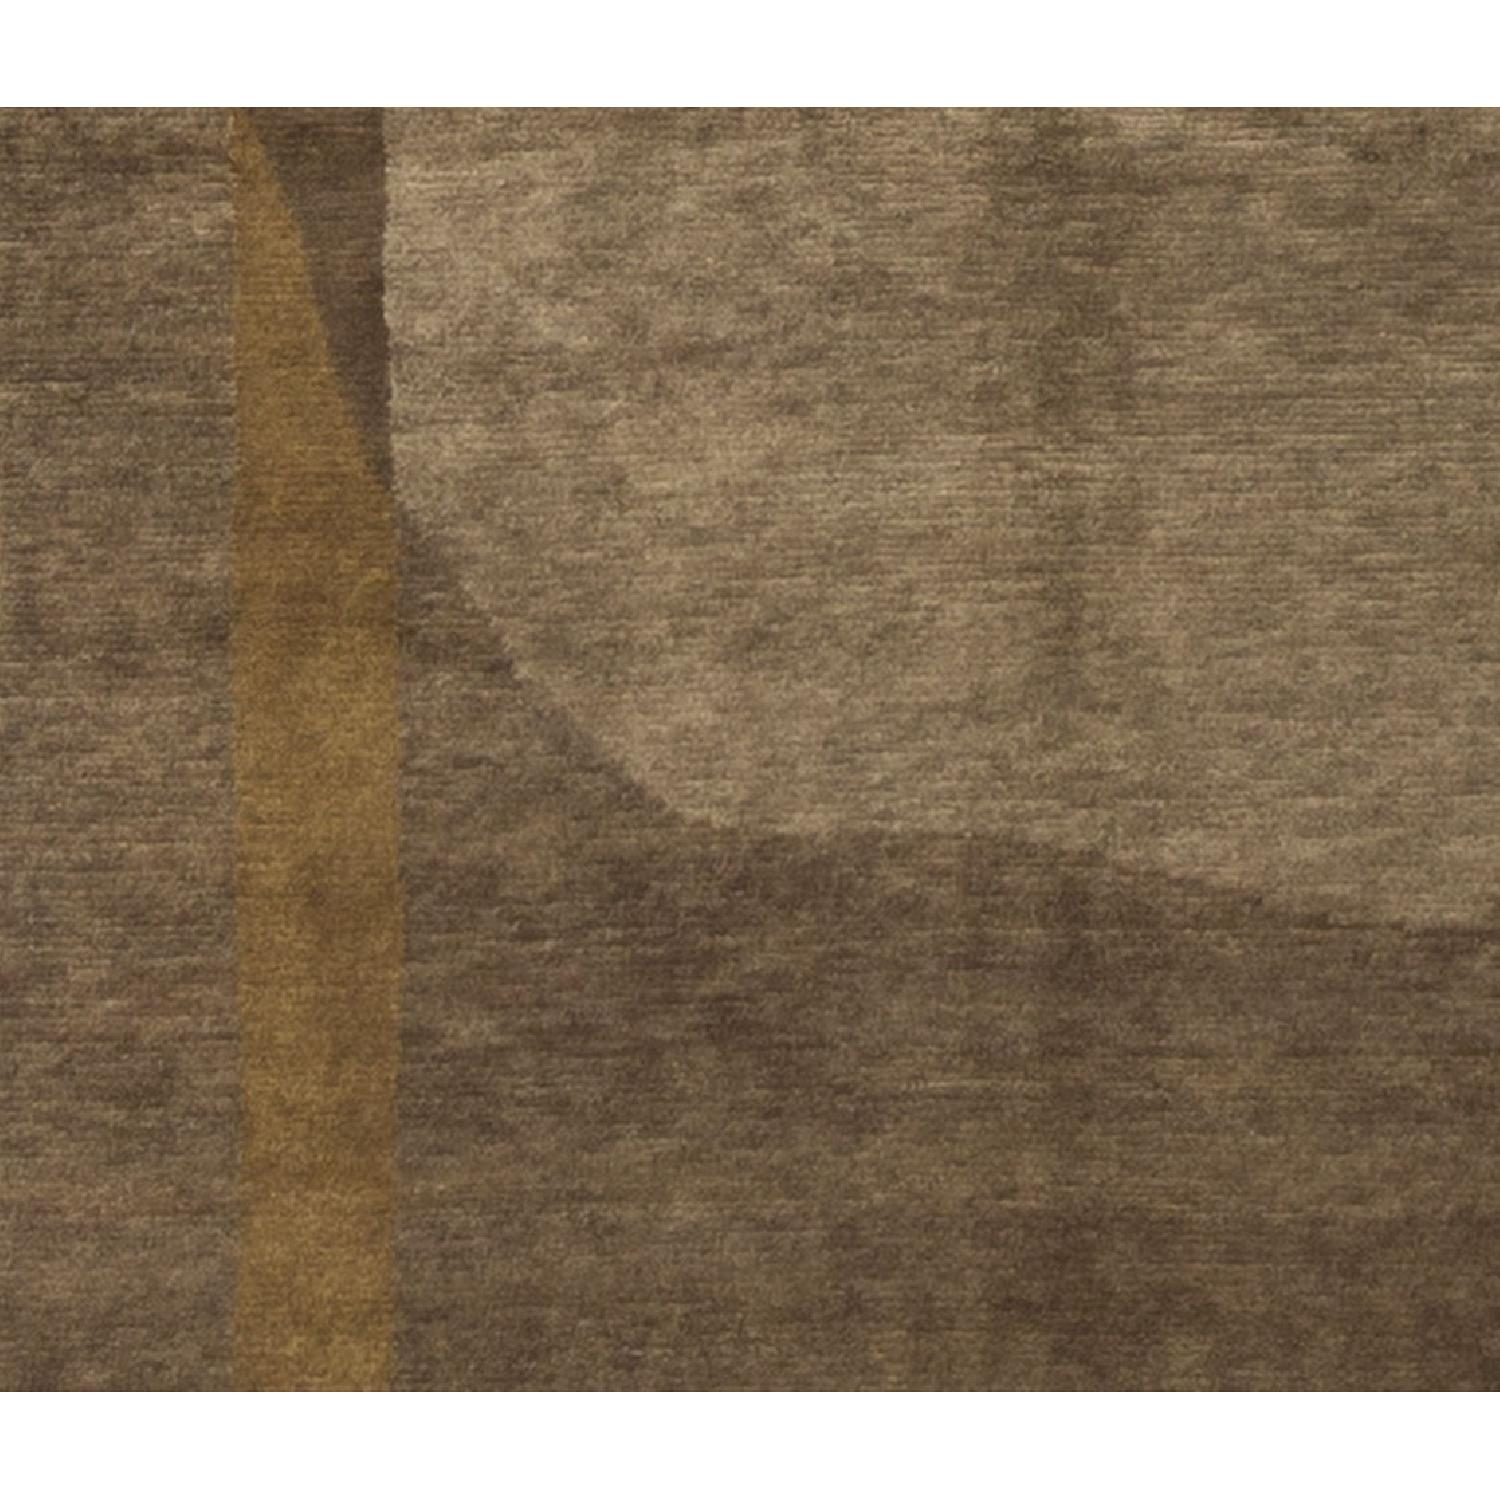 Modern Contemporary Hand Knotted Wool Rug in Brown/Beige - image-3